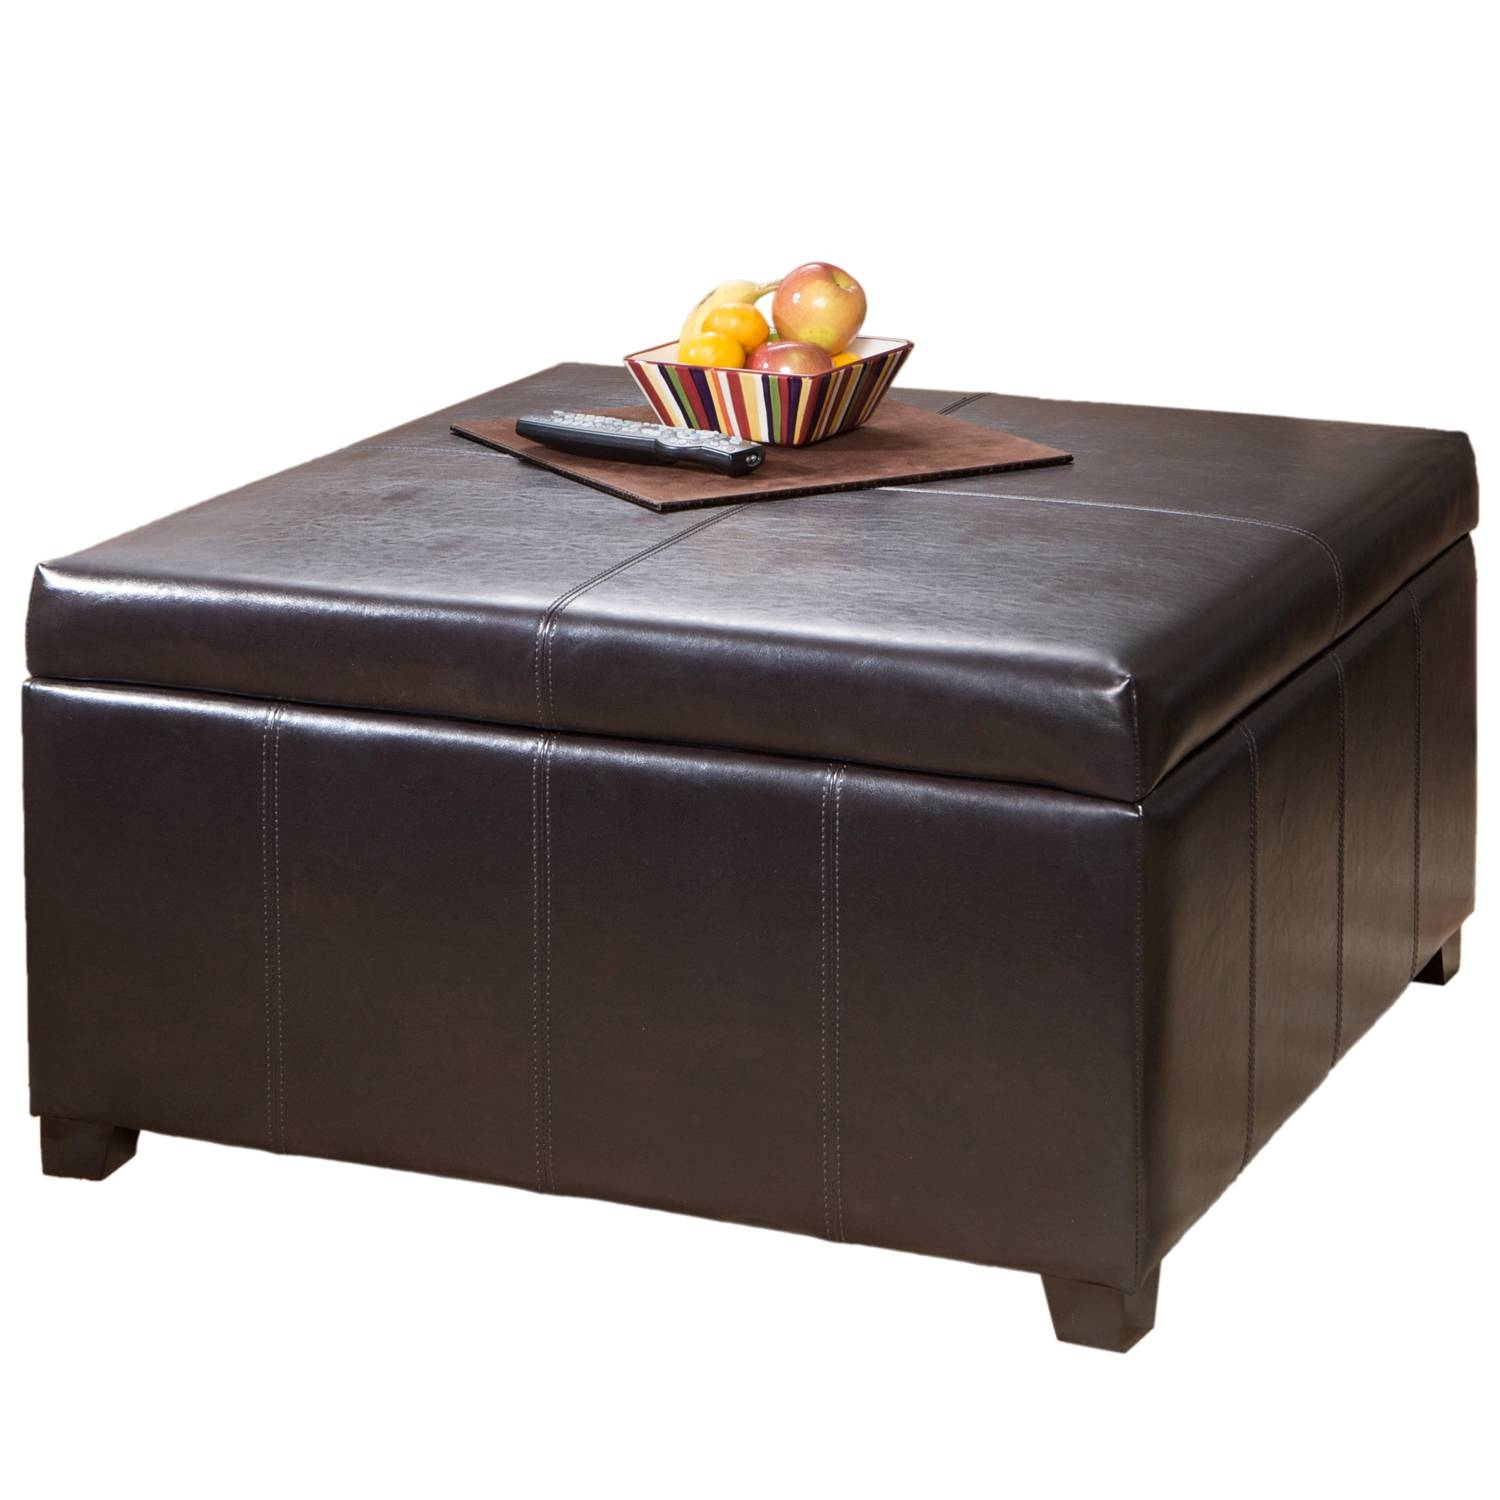 Brown Leather Ottoman With Storage | Stools, Chairs, Seat, And throughout Brown Leather Ottoman Coffee Tables With Storages (Image 12 of 30)